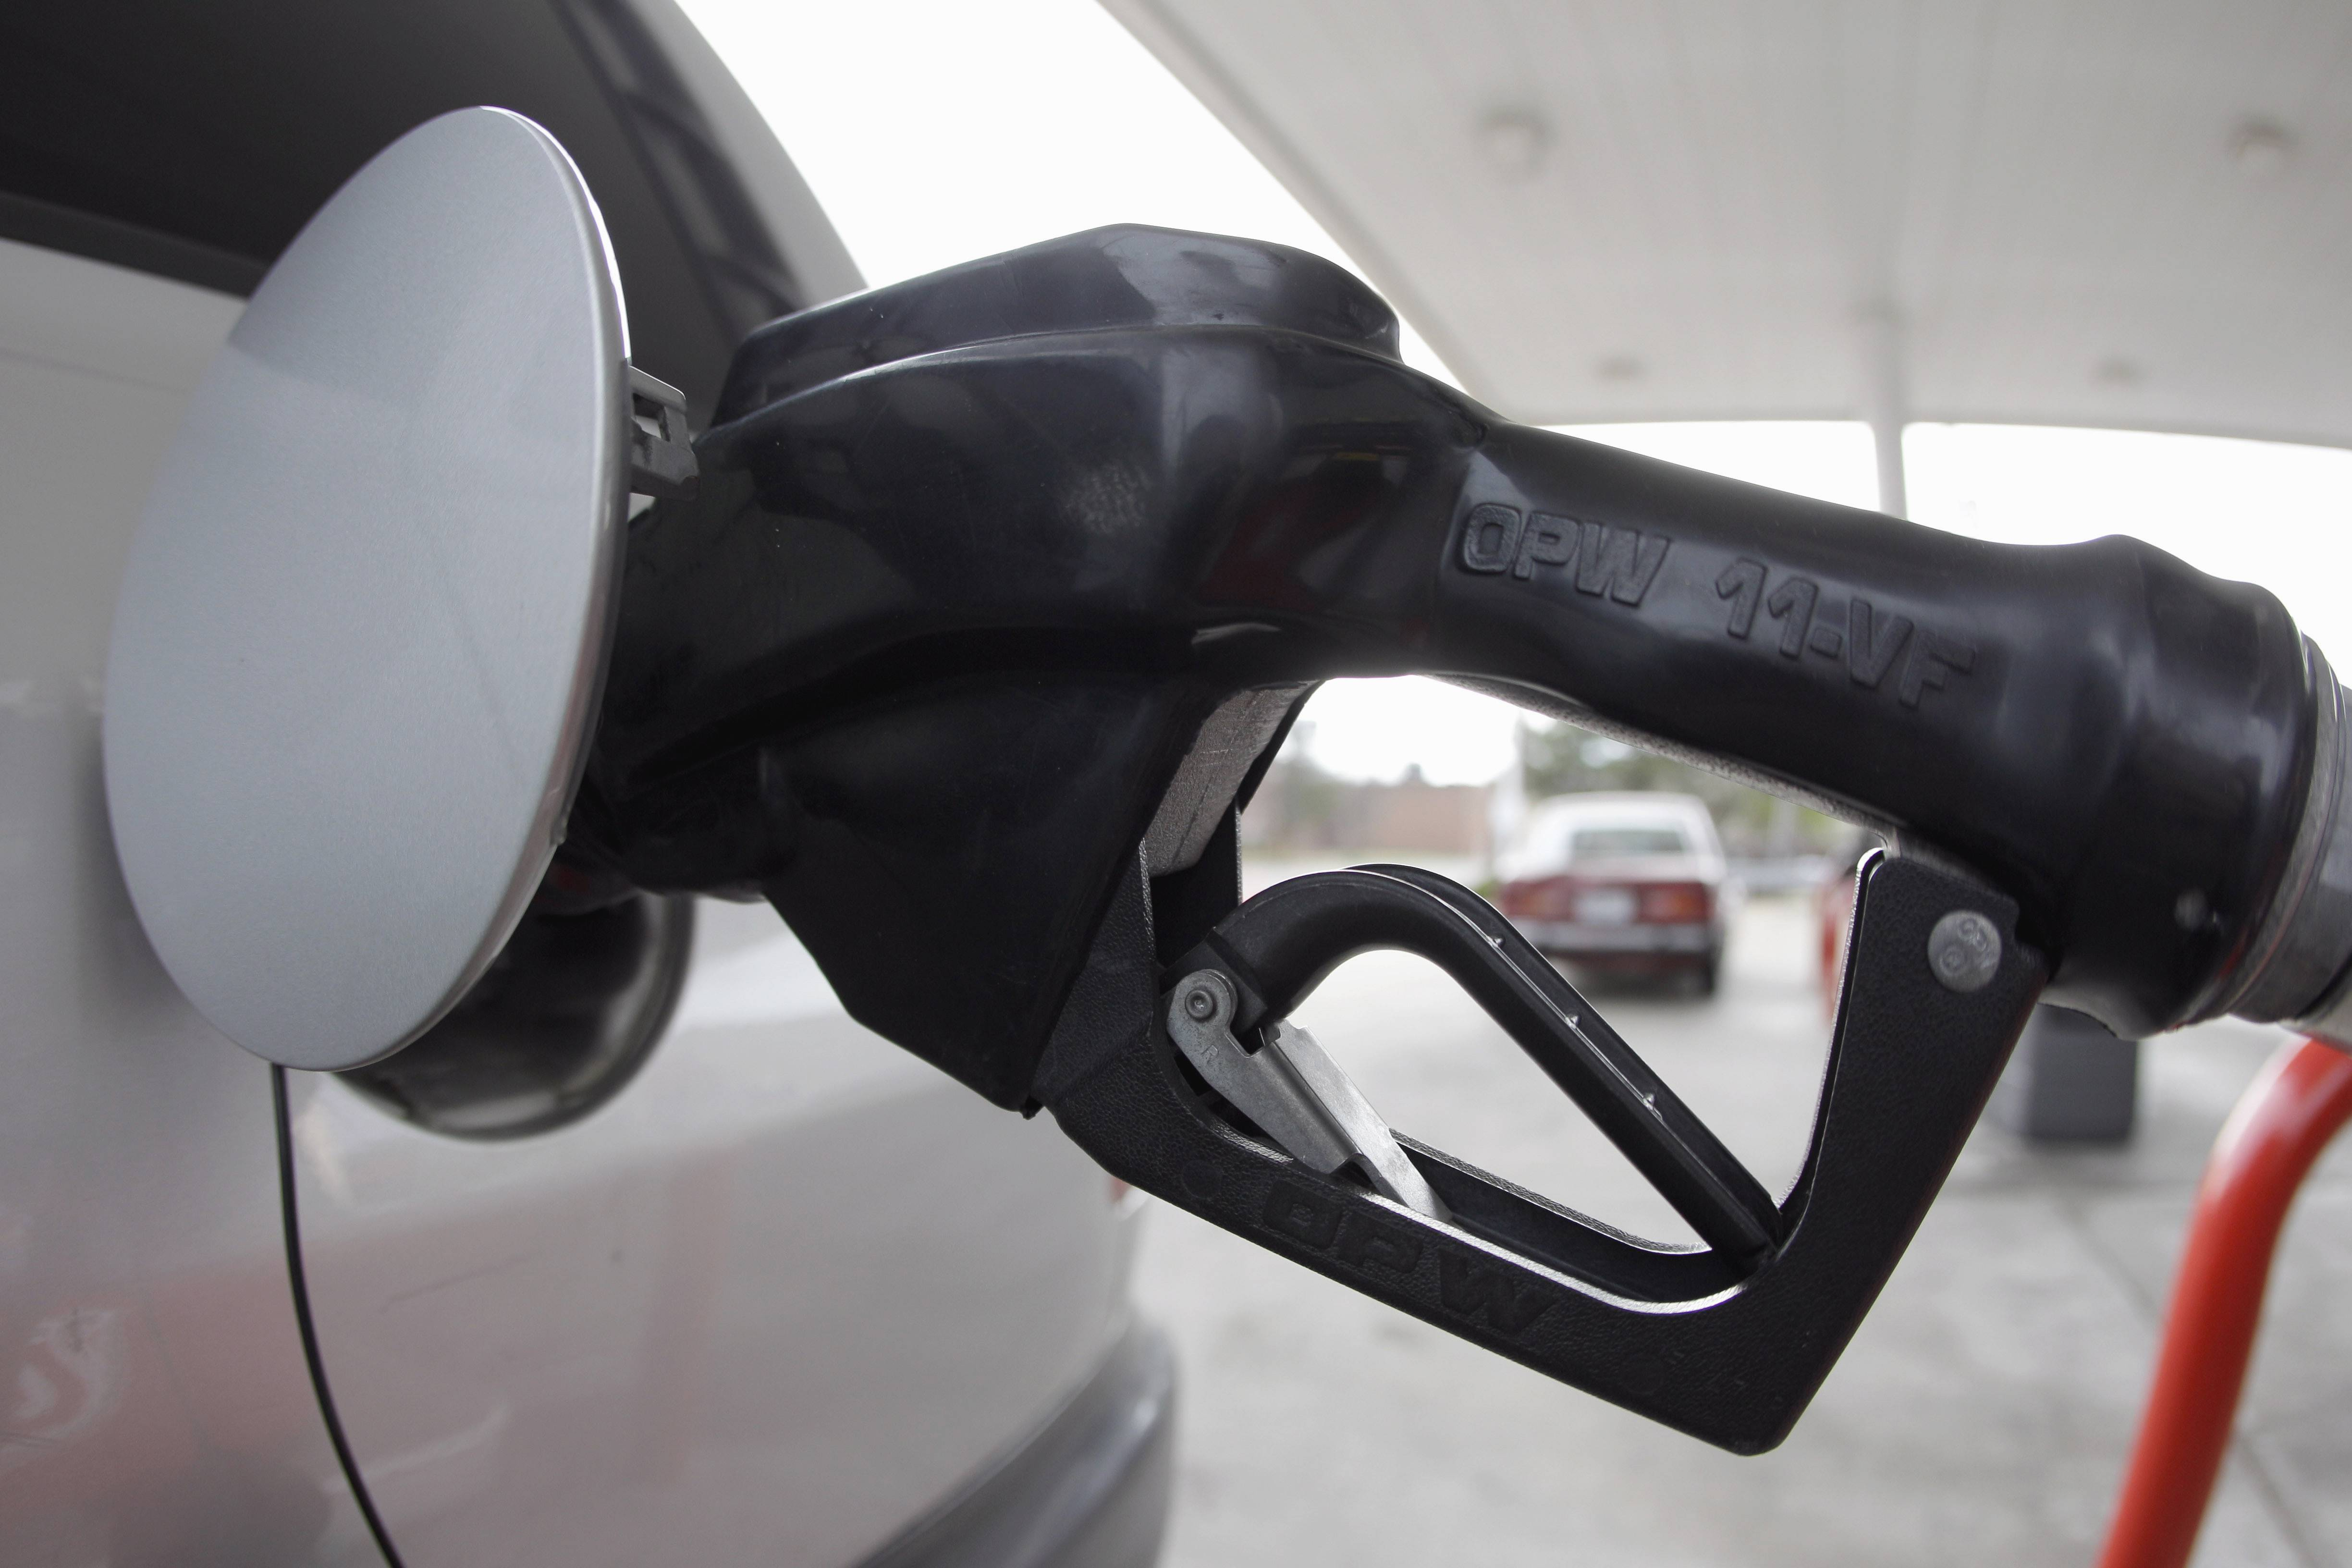 A gas station in Des Plaines and 12 others in the greater Chicago area were defendants in a sales-tax fraud lawsuit that was resolved by a $4.5 million settlement.